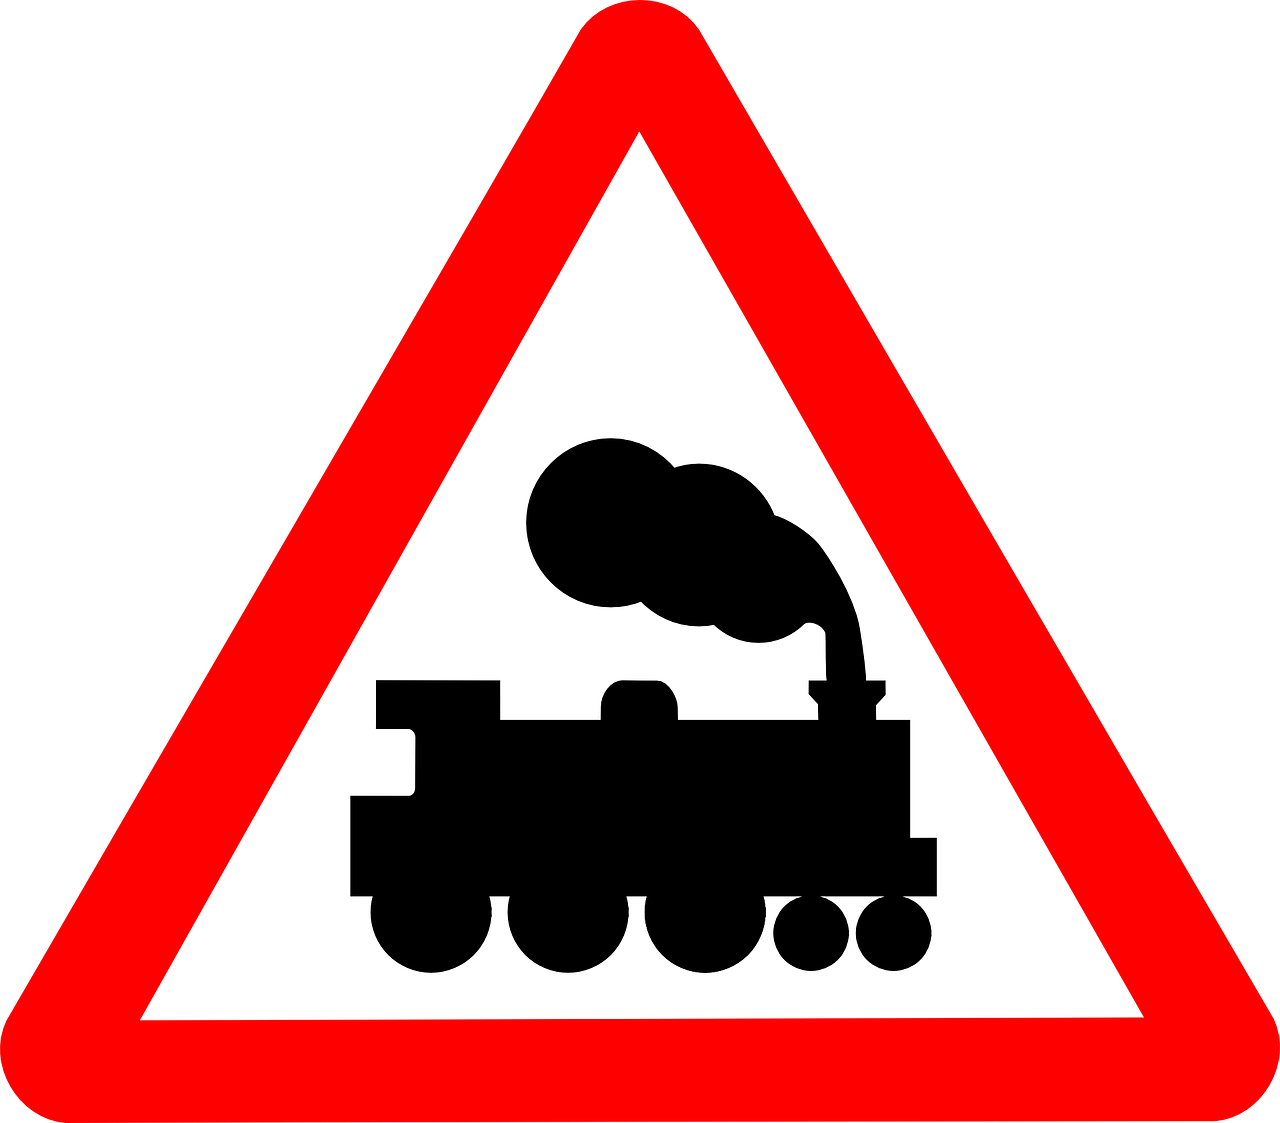 railway crossing,traffic,signs,level crossing,roadsigns,train,railway track,railroad,free vector graphics,free pictures, free photos, free images, royalty free, free illustrations, public domain